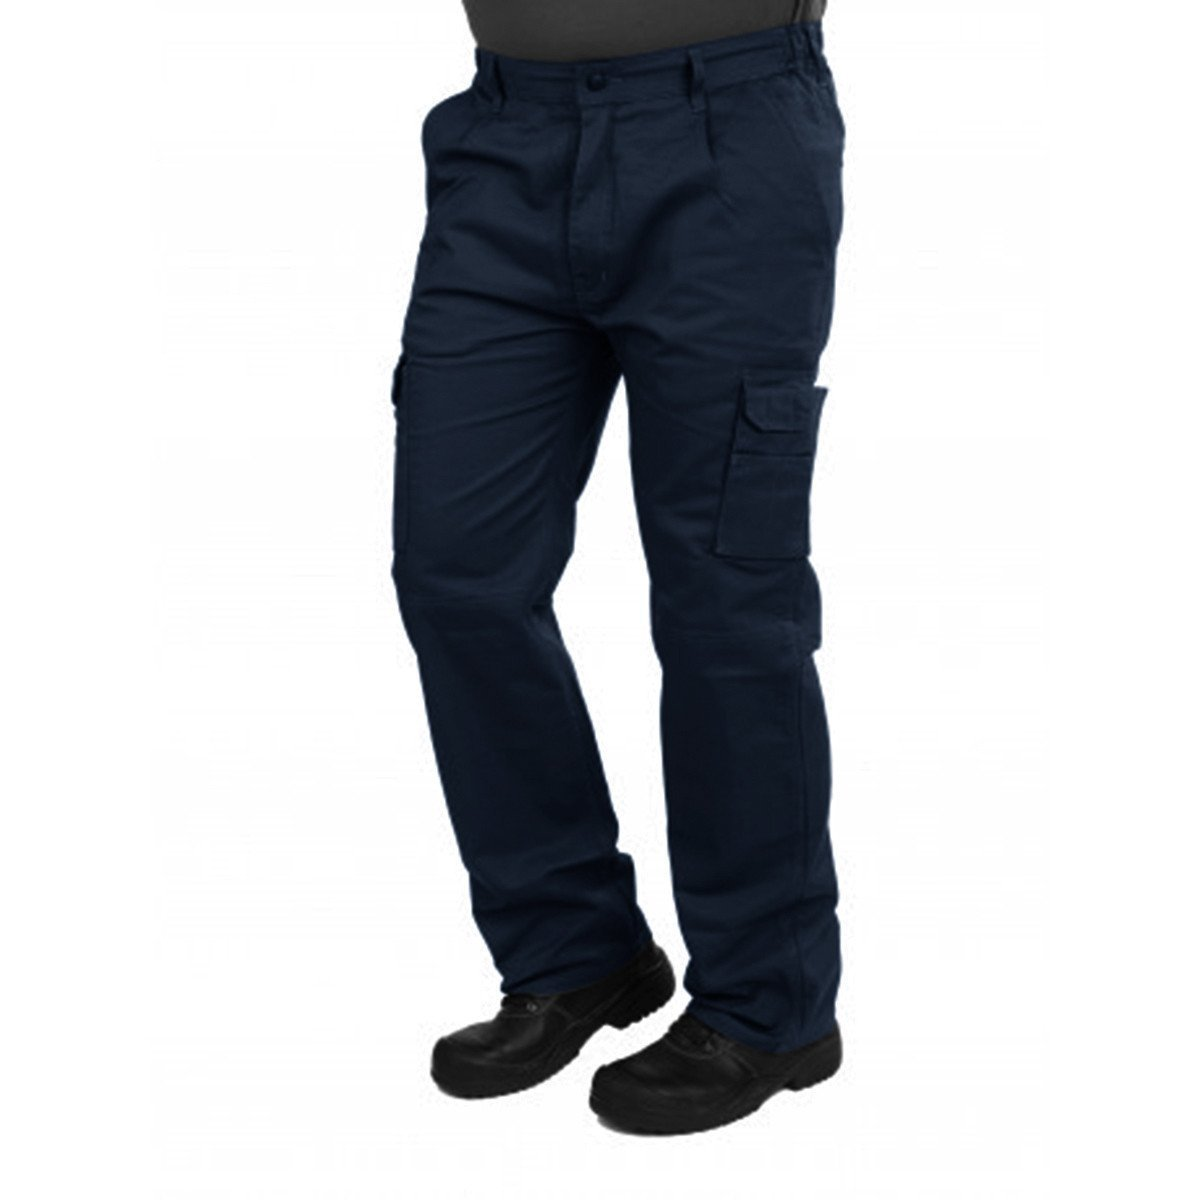 HSKE Eilenburg Six Pocket Cargo Trousers Men's Cargo Pants Image Navy 26 30